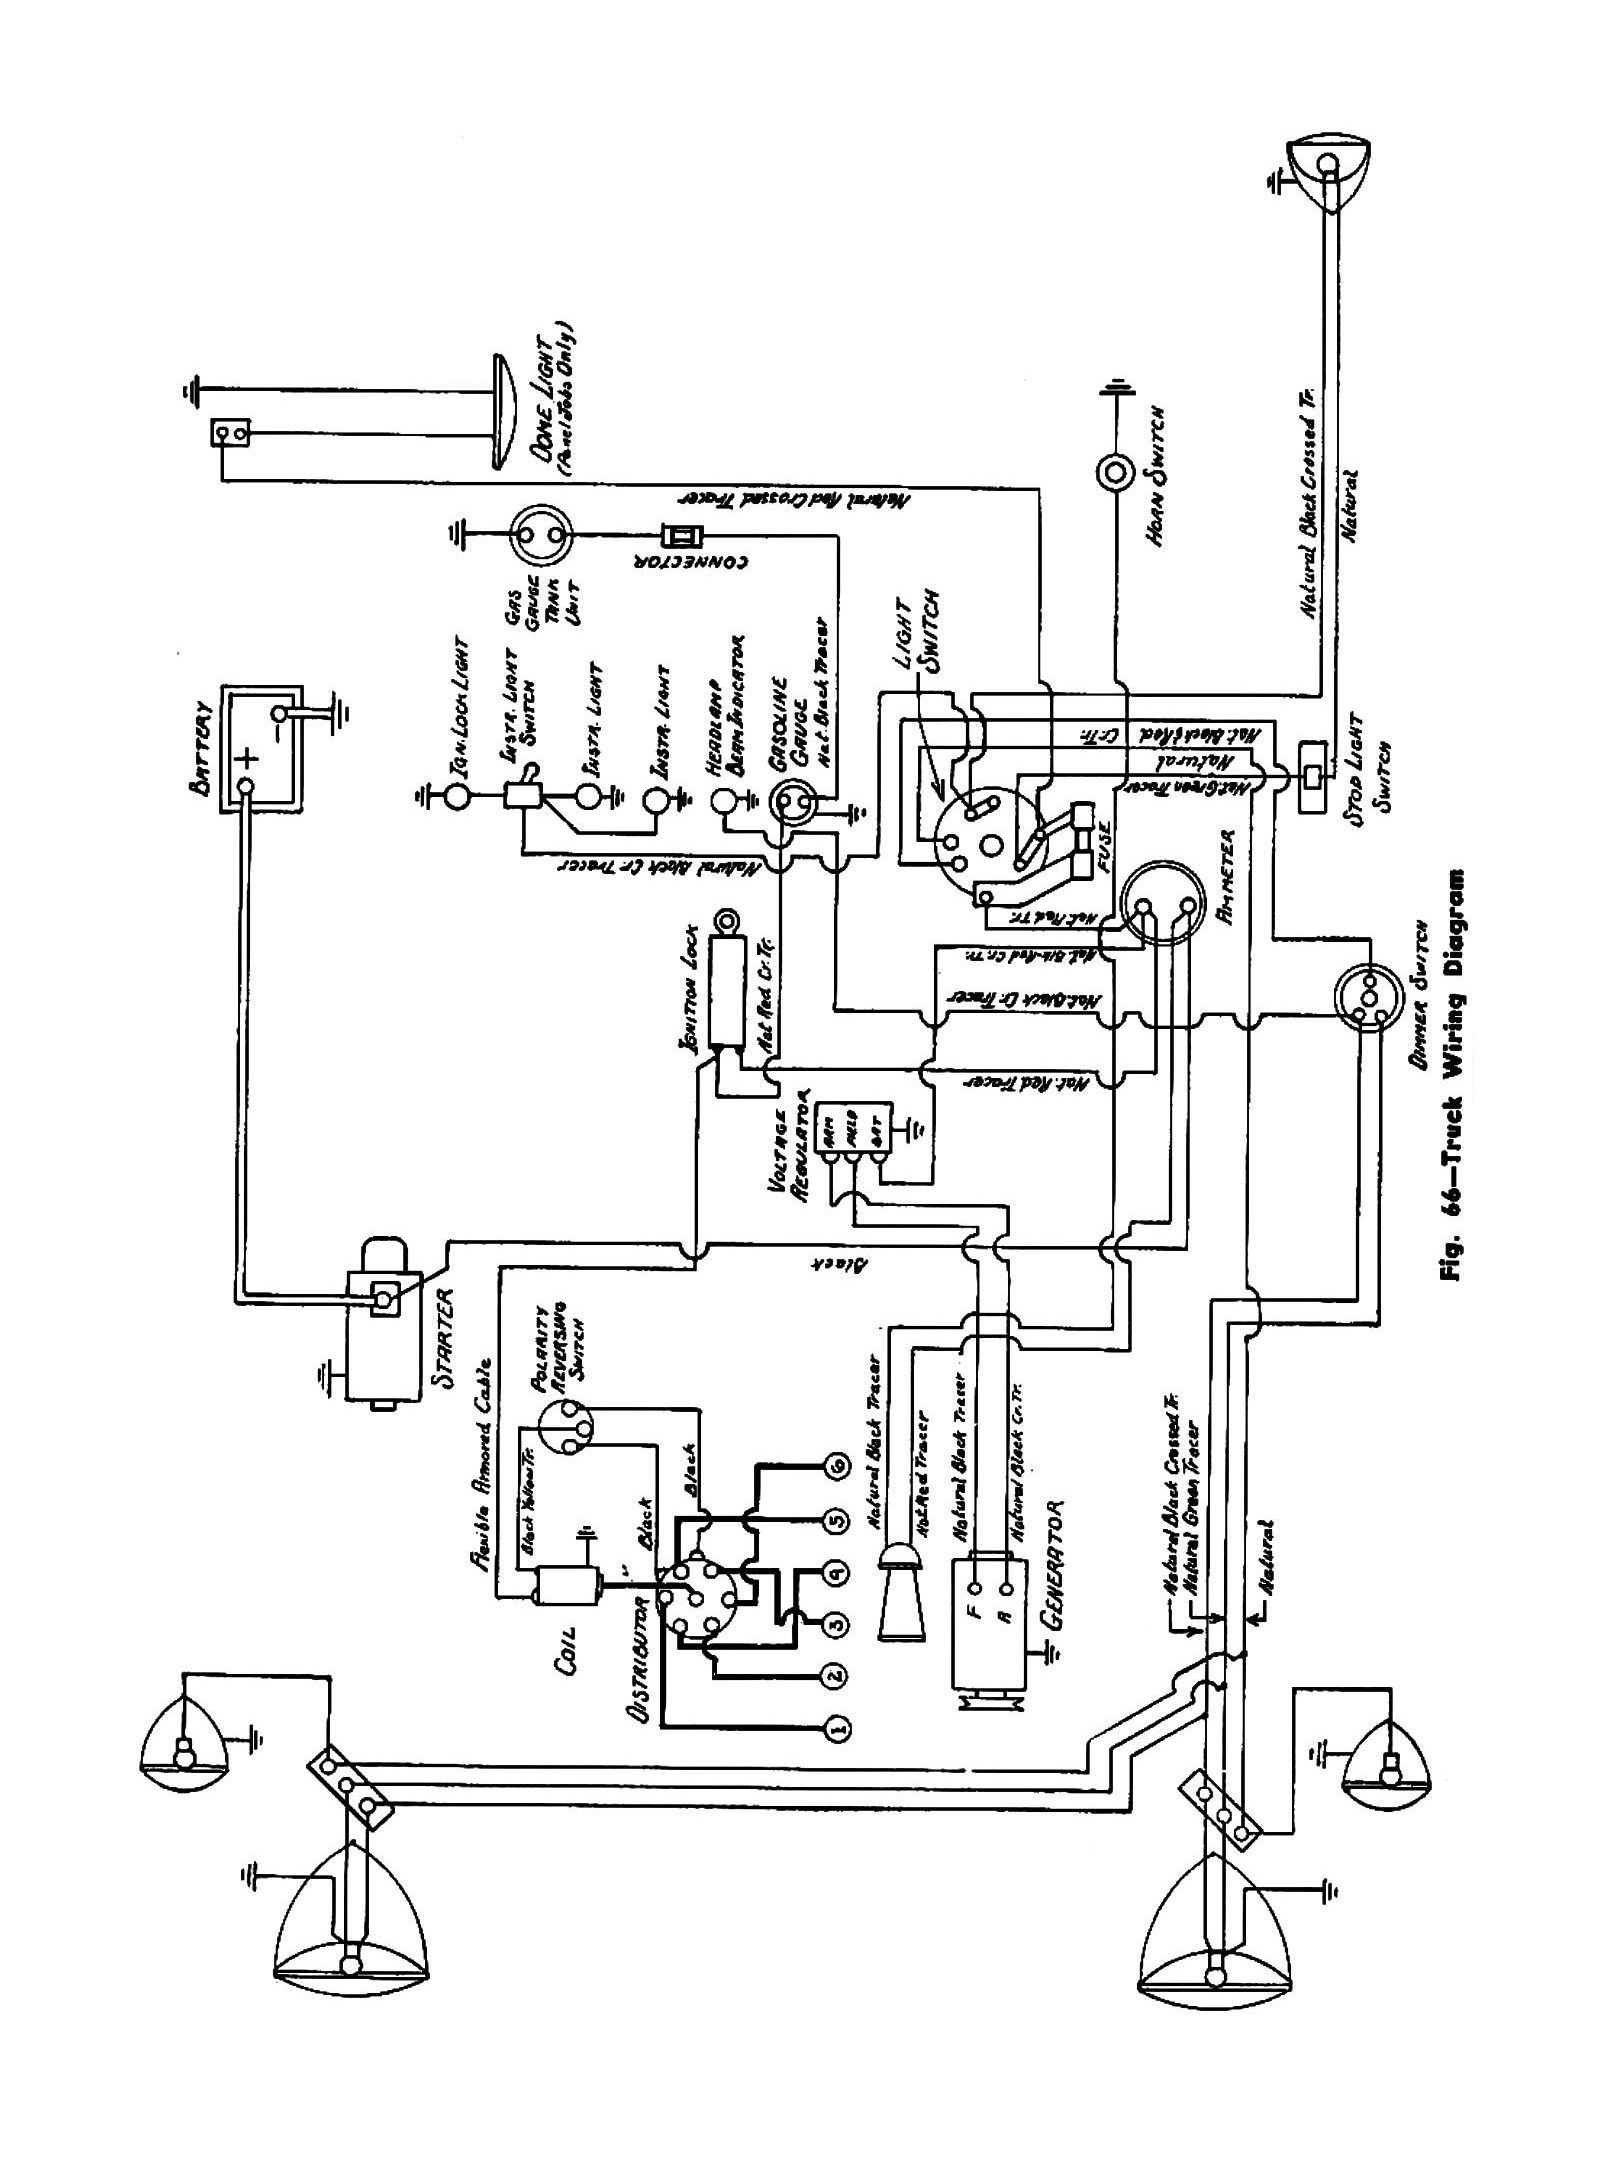 hight resolution of chevy wiring diagrams chevy venture wiring diagram chevy truck wiring diagram